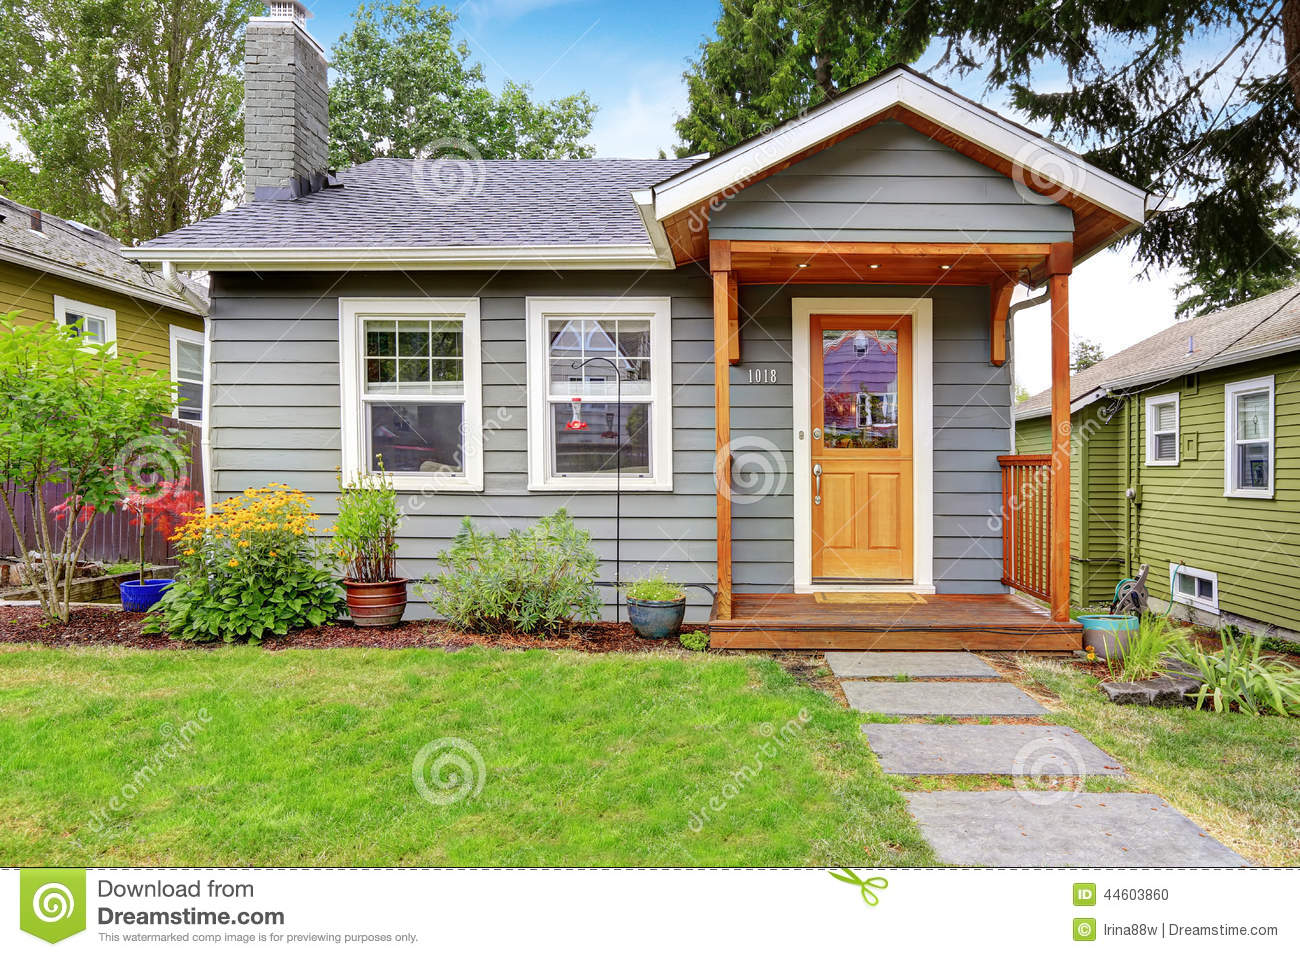 Watch besides 10079 furthermore 597731 additionally Modern House Designs For Your New Home together with Stock Photo Grey Old House Wooden Trim Small Deck Front Yard Flower Bed Lawn Image44603860. on home design exterior small house